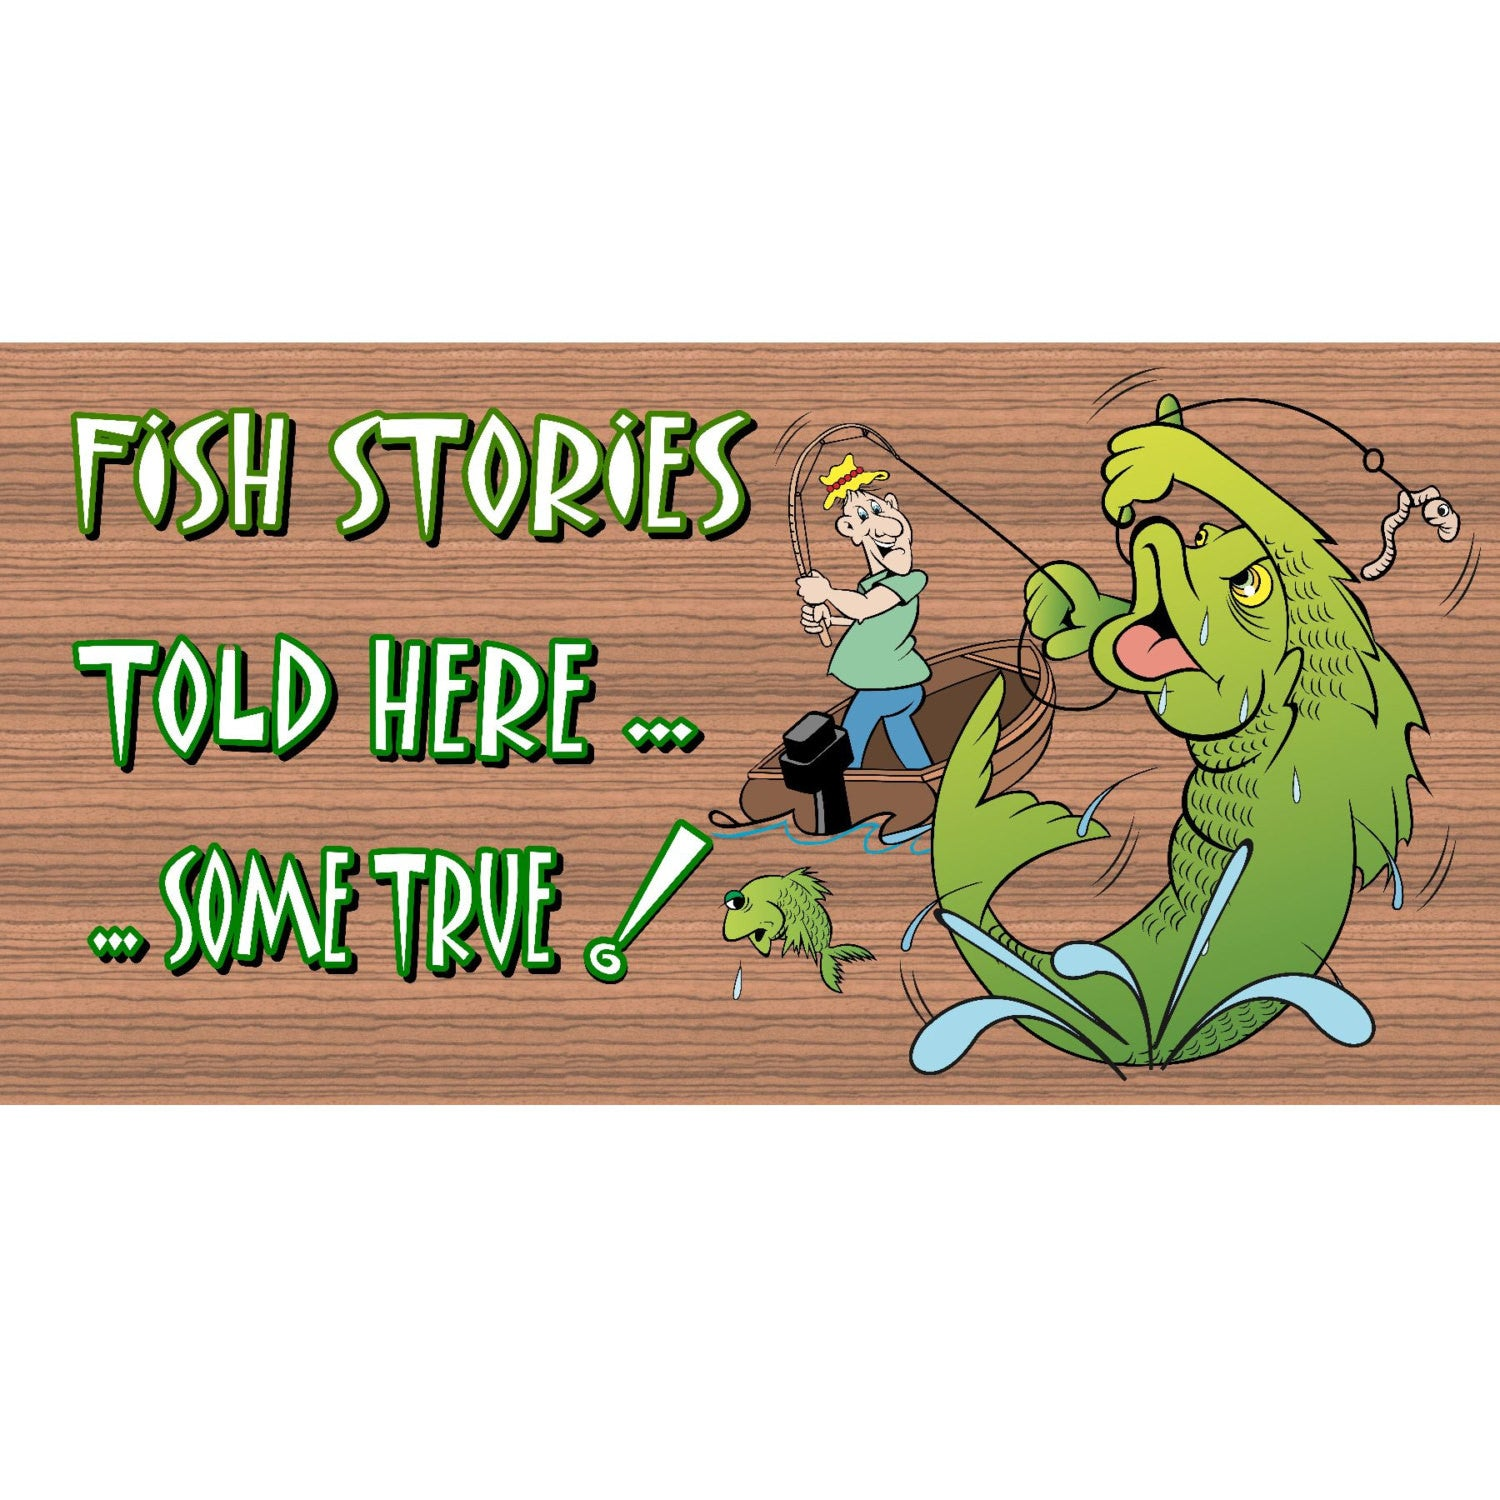 Fishing Wood Signs - Fish StoriesTold Here...Some True GS046